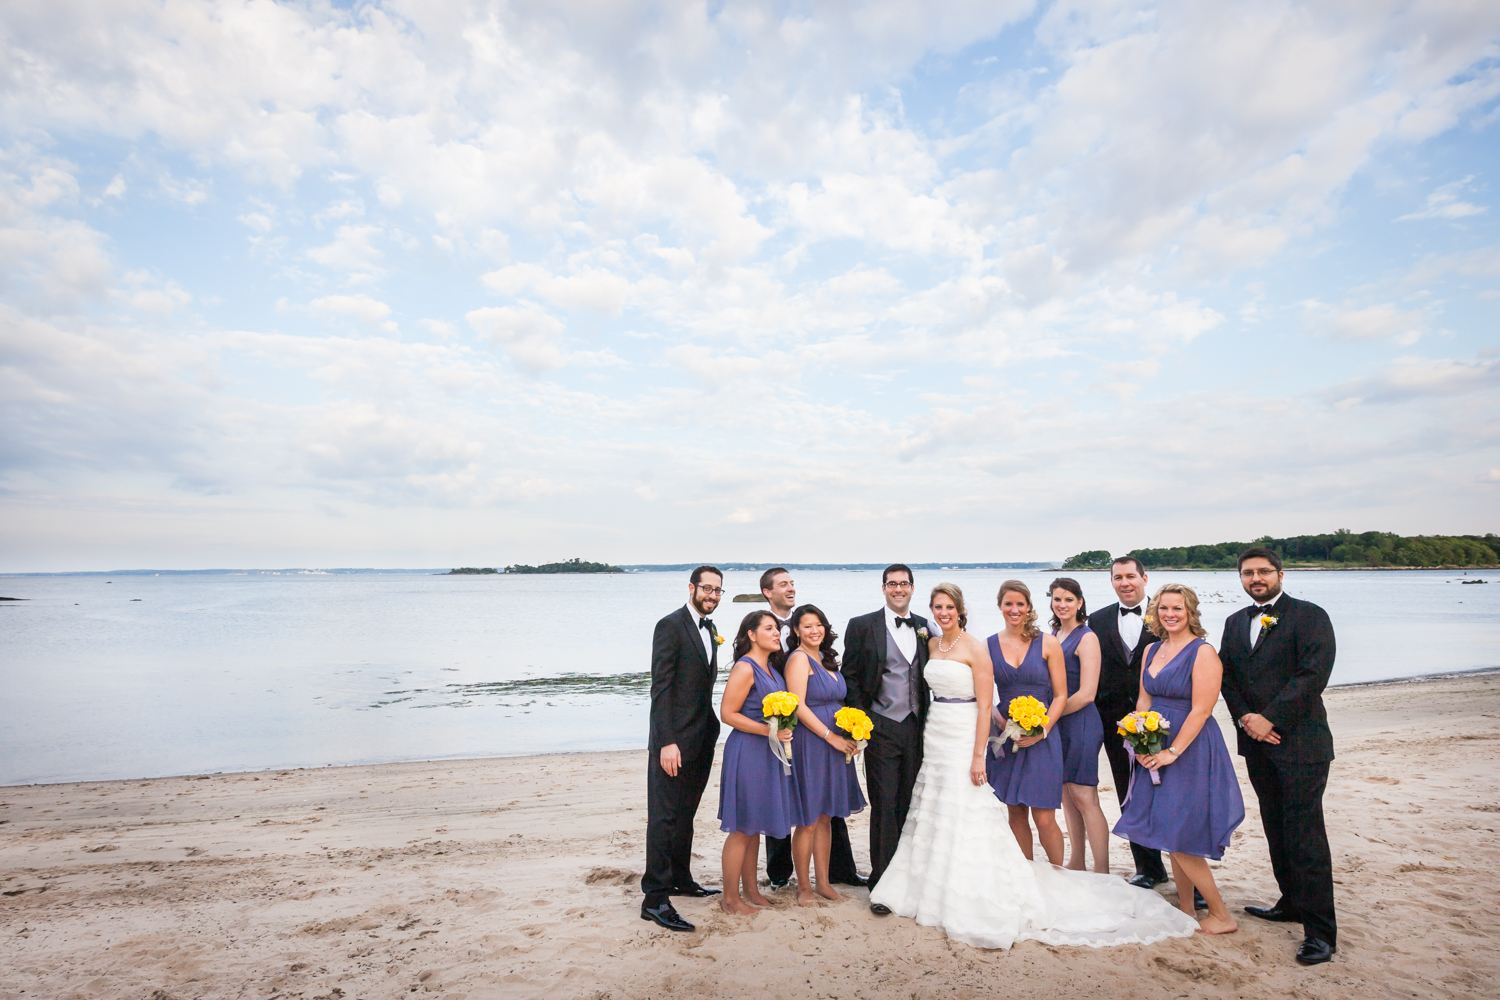 Bridal party on beach at a Davenport Mansion wedding